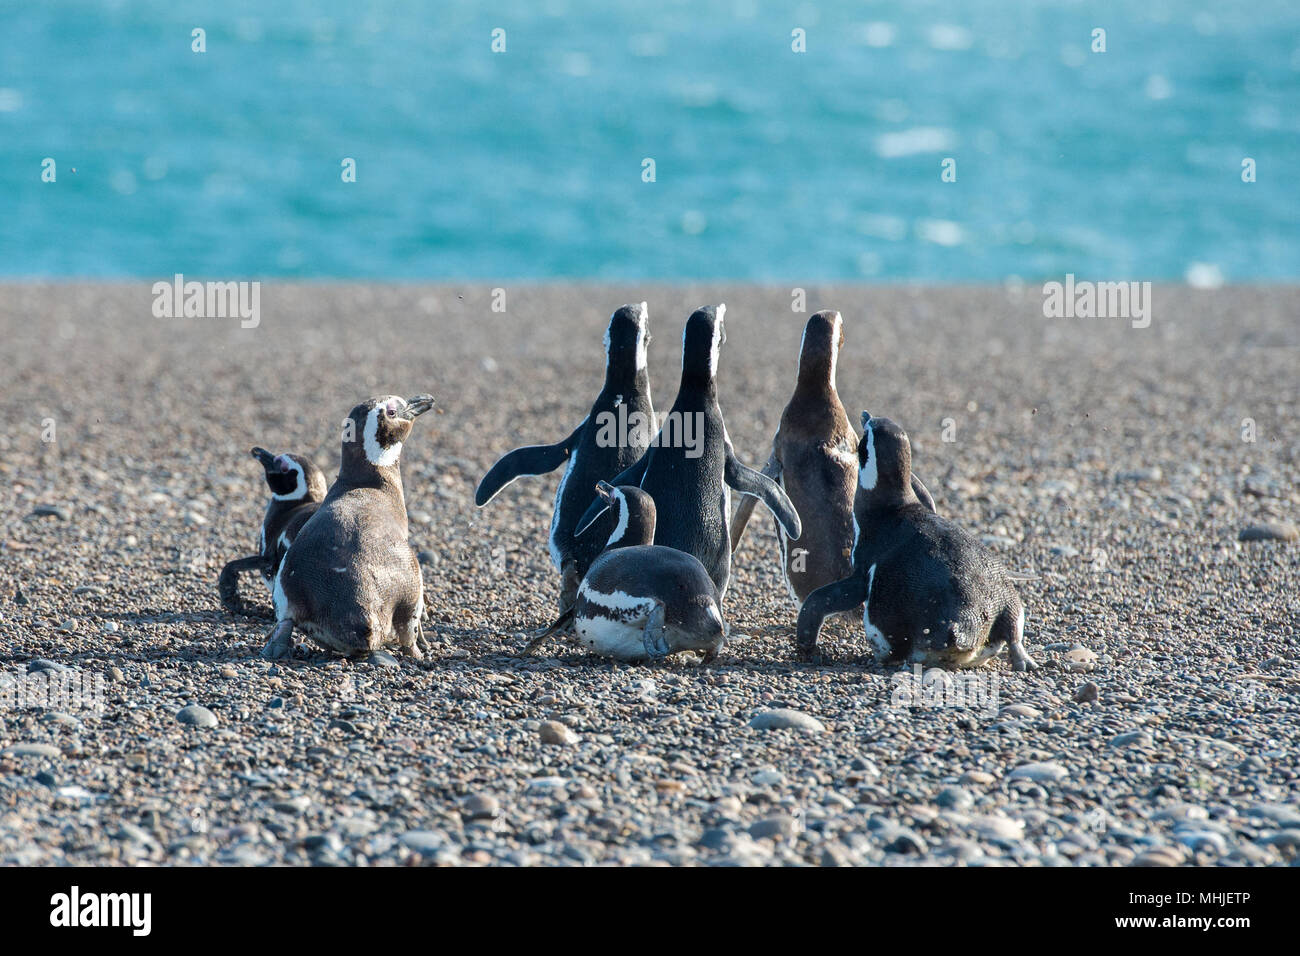 Patagonia penguin group while walking on the beach Stock Photo